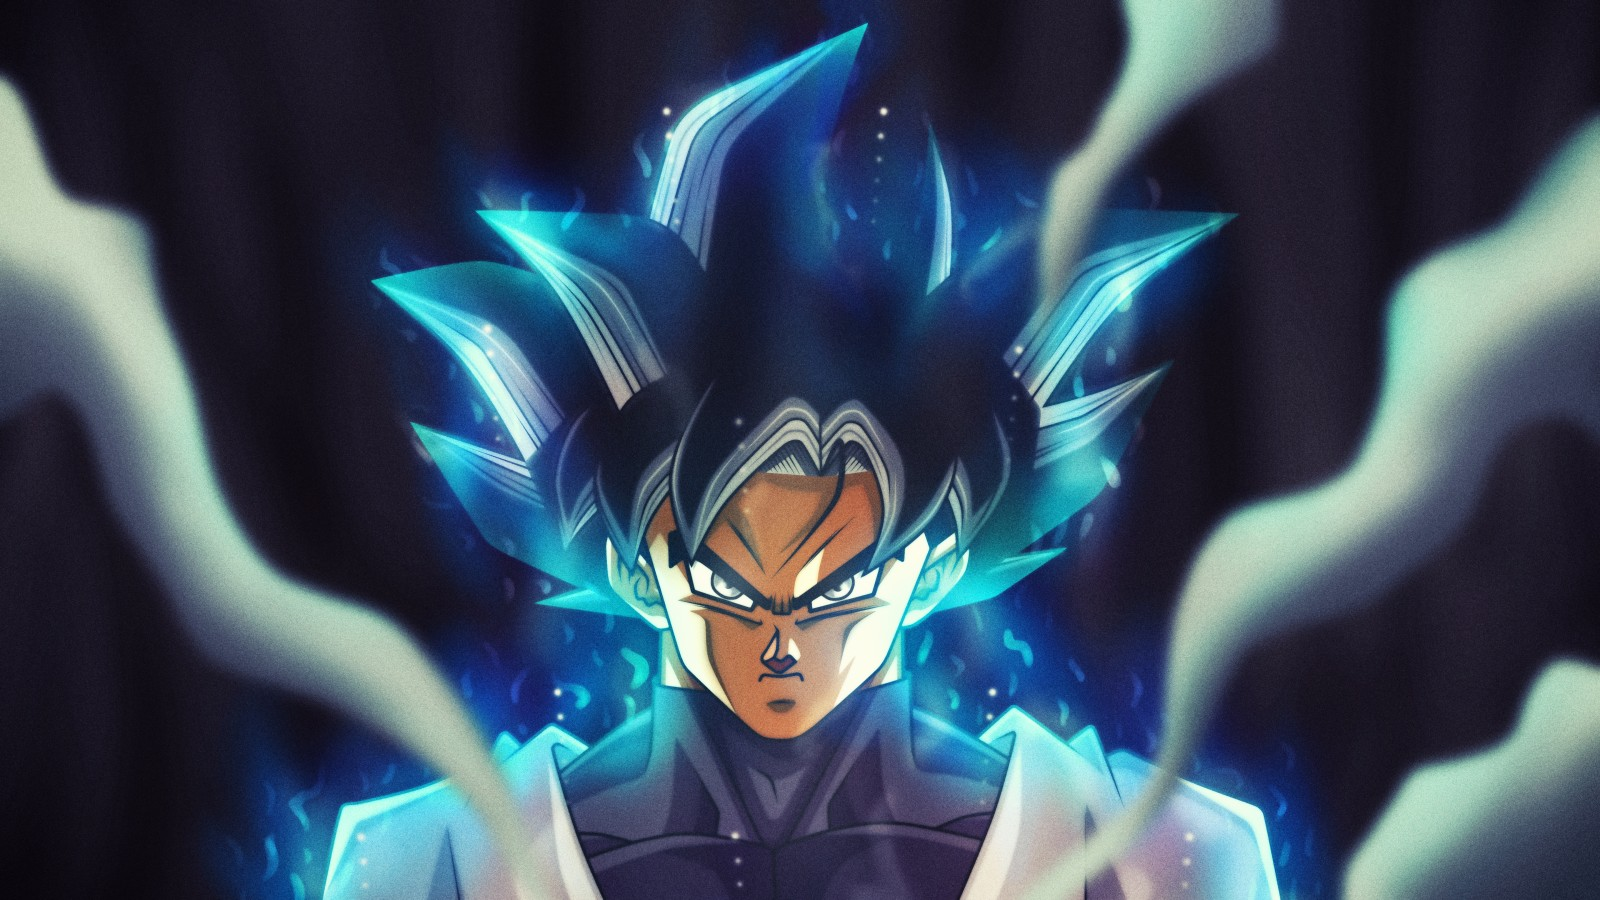 Goku Ultra Instinct Wallpaper 3d Goku Black 5k Wallpapers Hd Wallpapers Id 25508